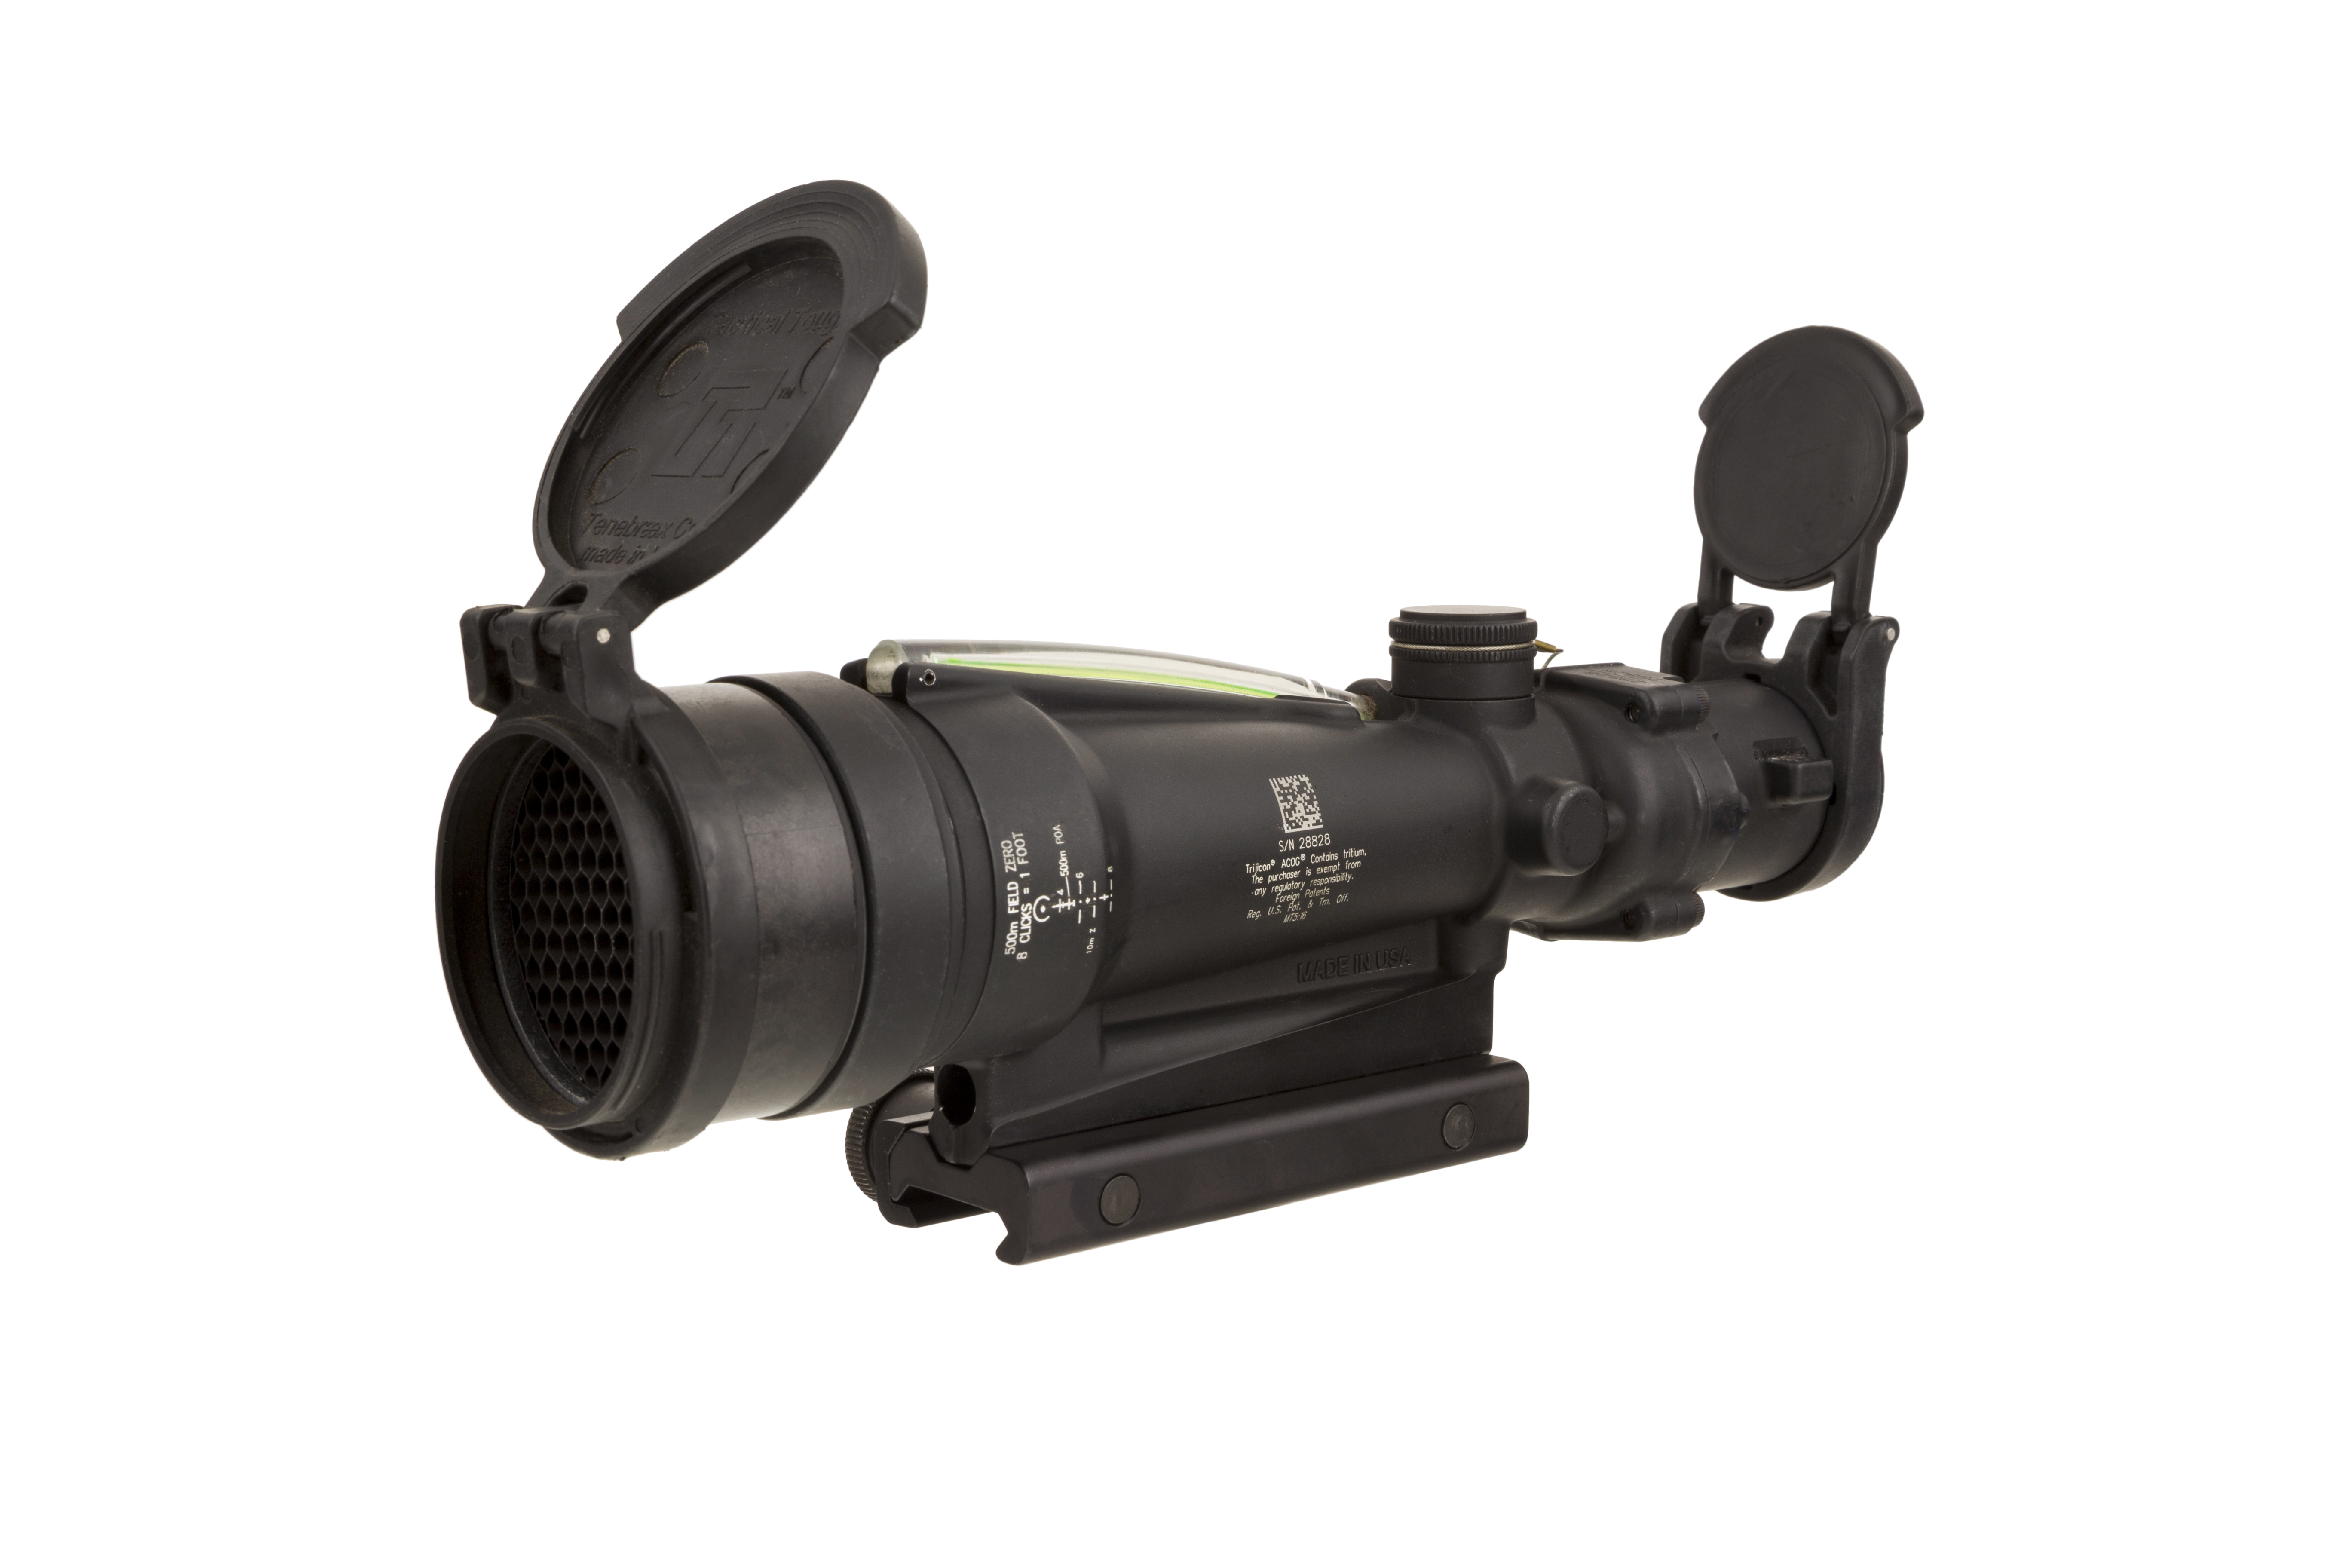 Trijicon ACOG<sup>®</sup> 3.5x35 BAC Riflescope - M249